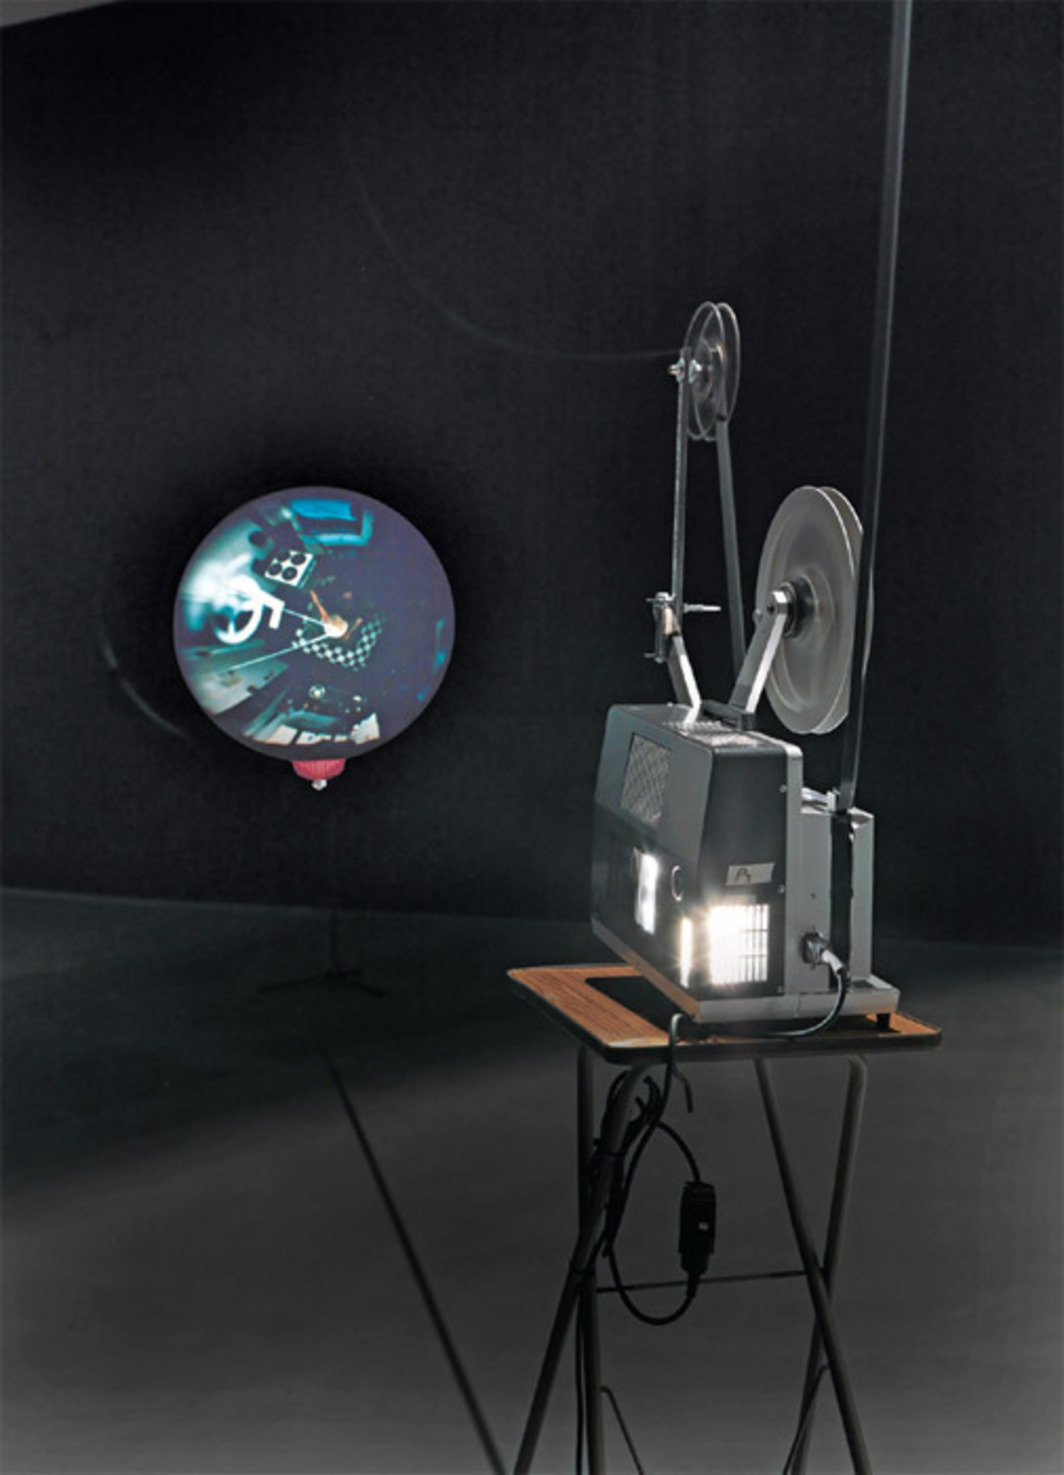 Klaus Lutz, Vulcan, 2004, 16-mm film, projector, balloon, salad strainer, music stand, sound, 2 minutes. Installation view.